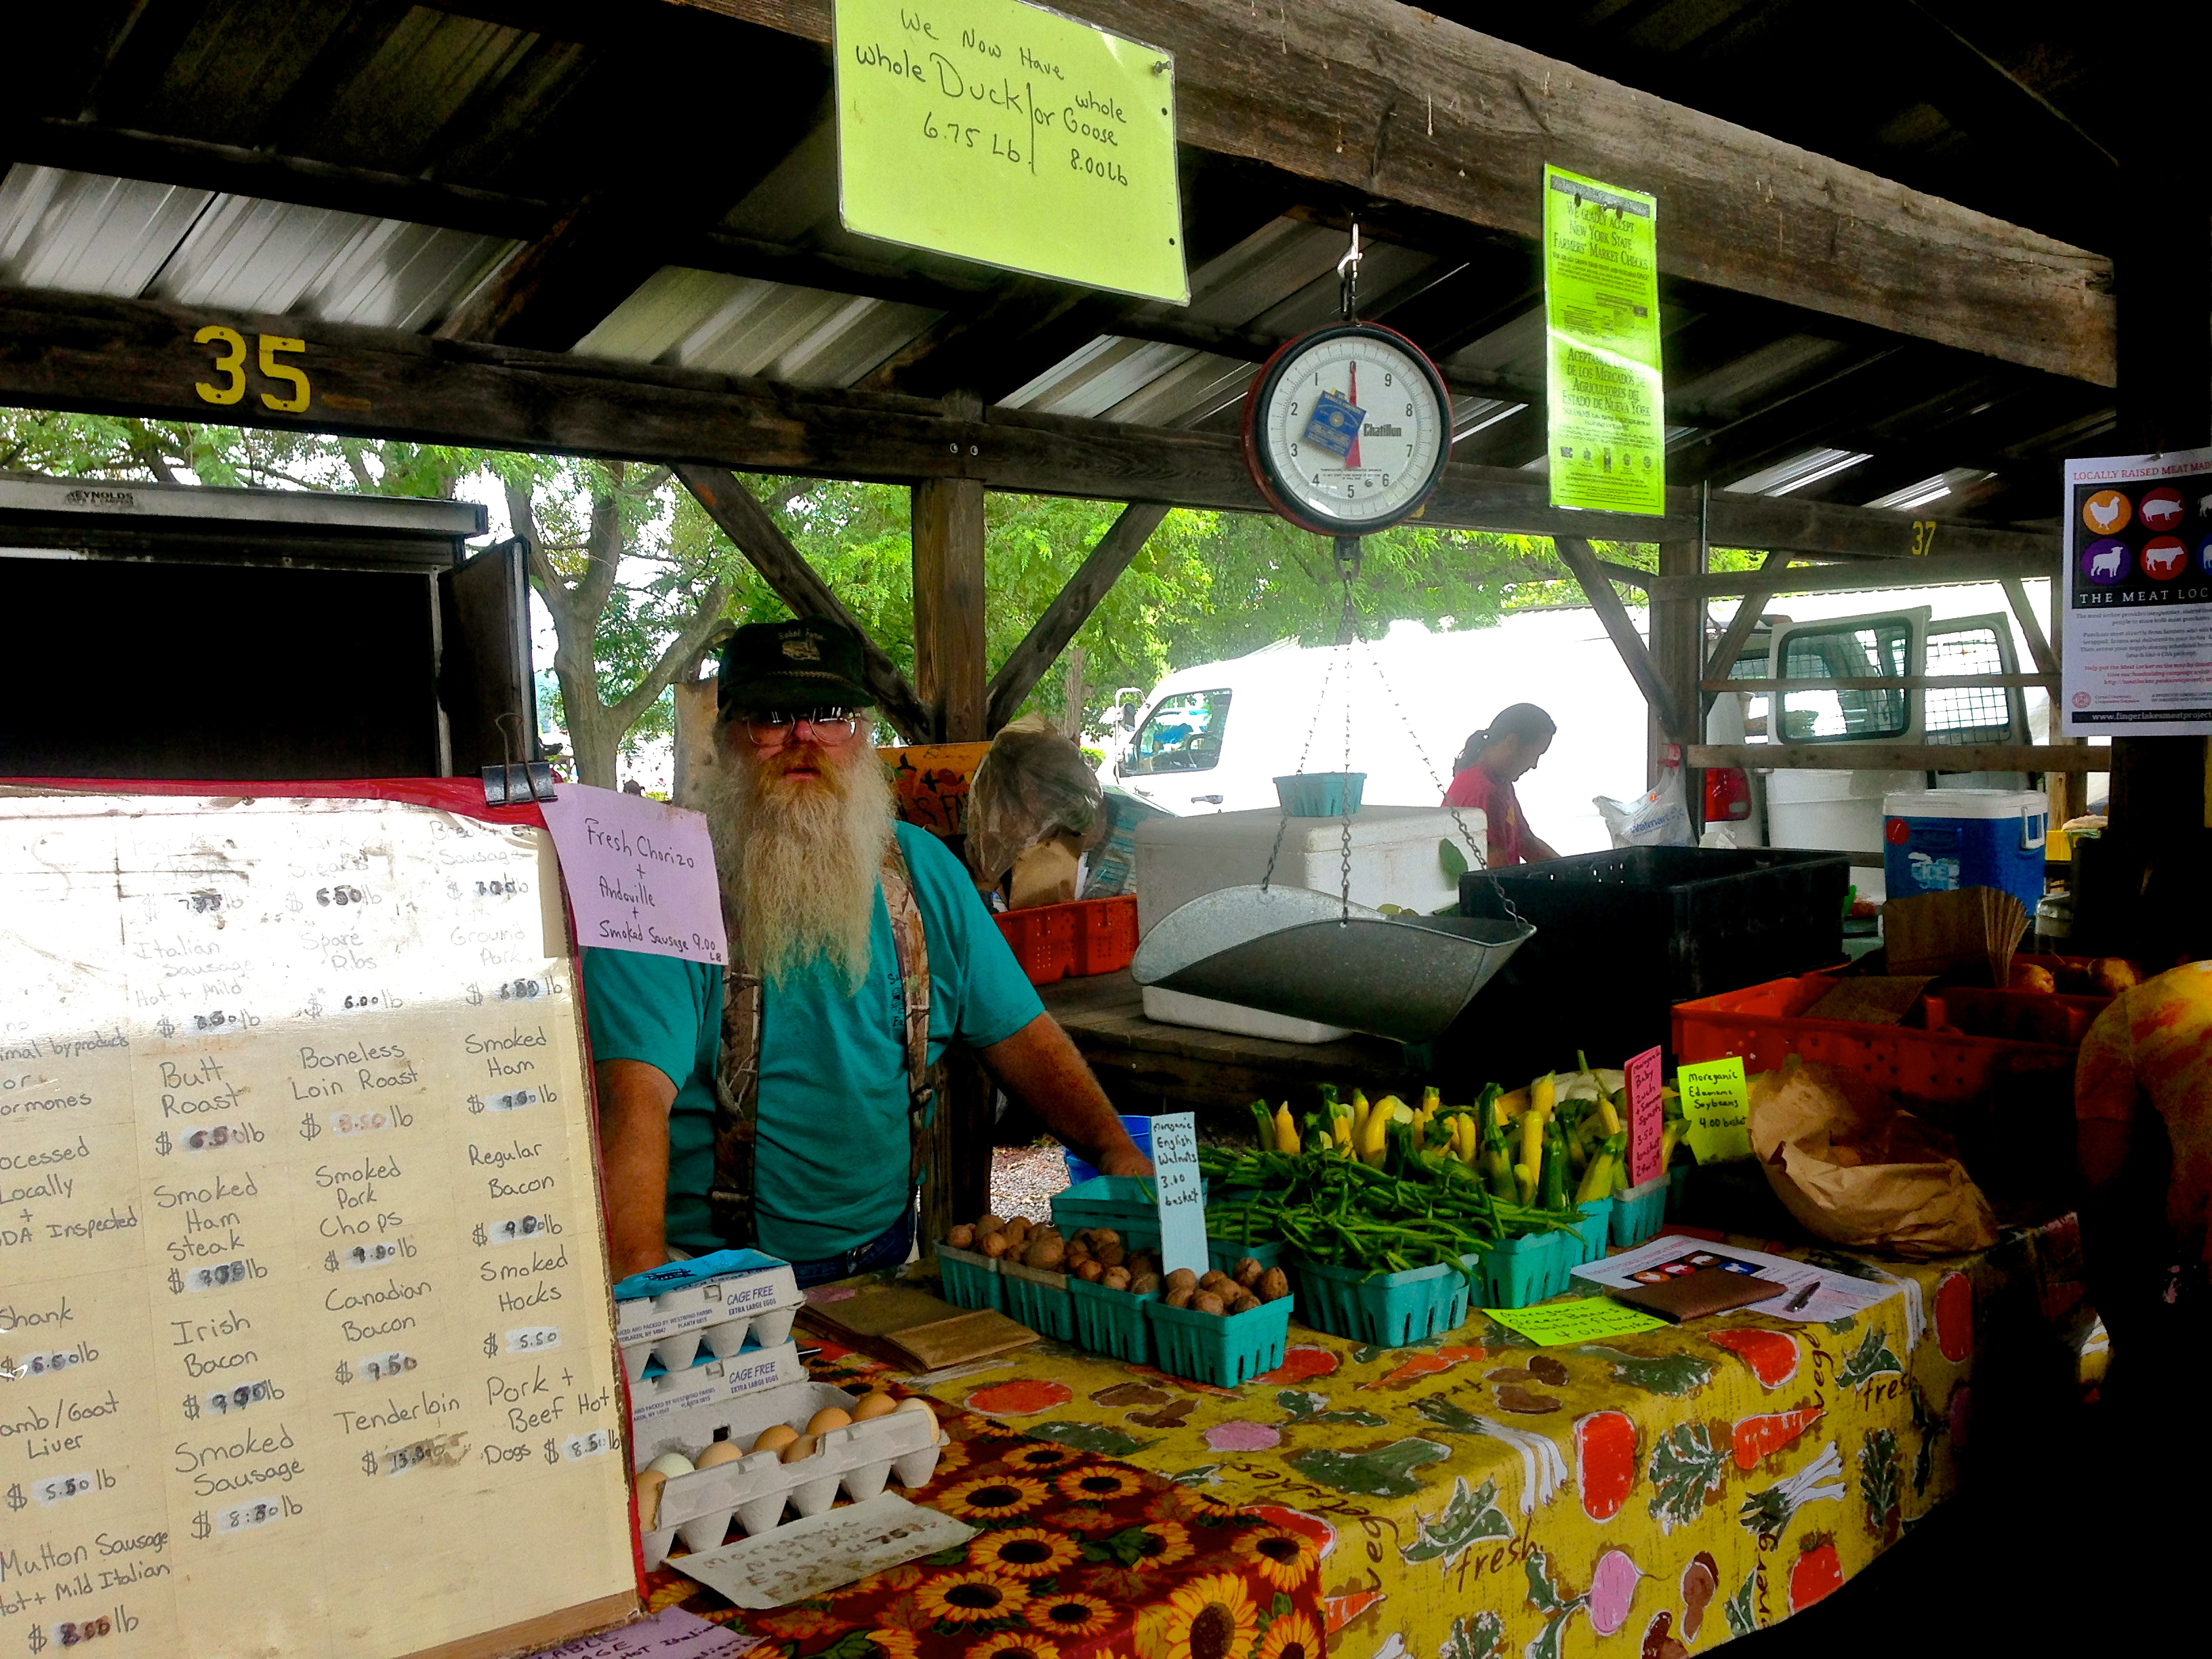 A meat vendor at the Ithaca Farmers Market